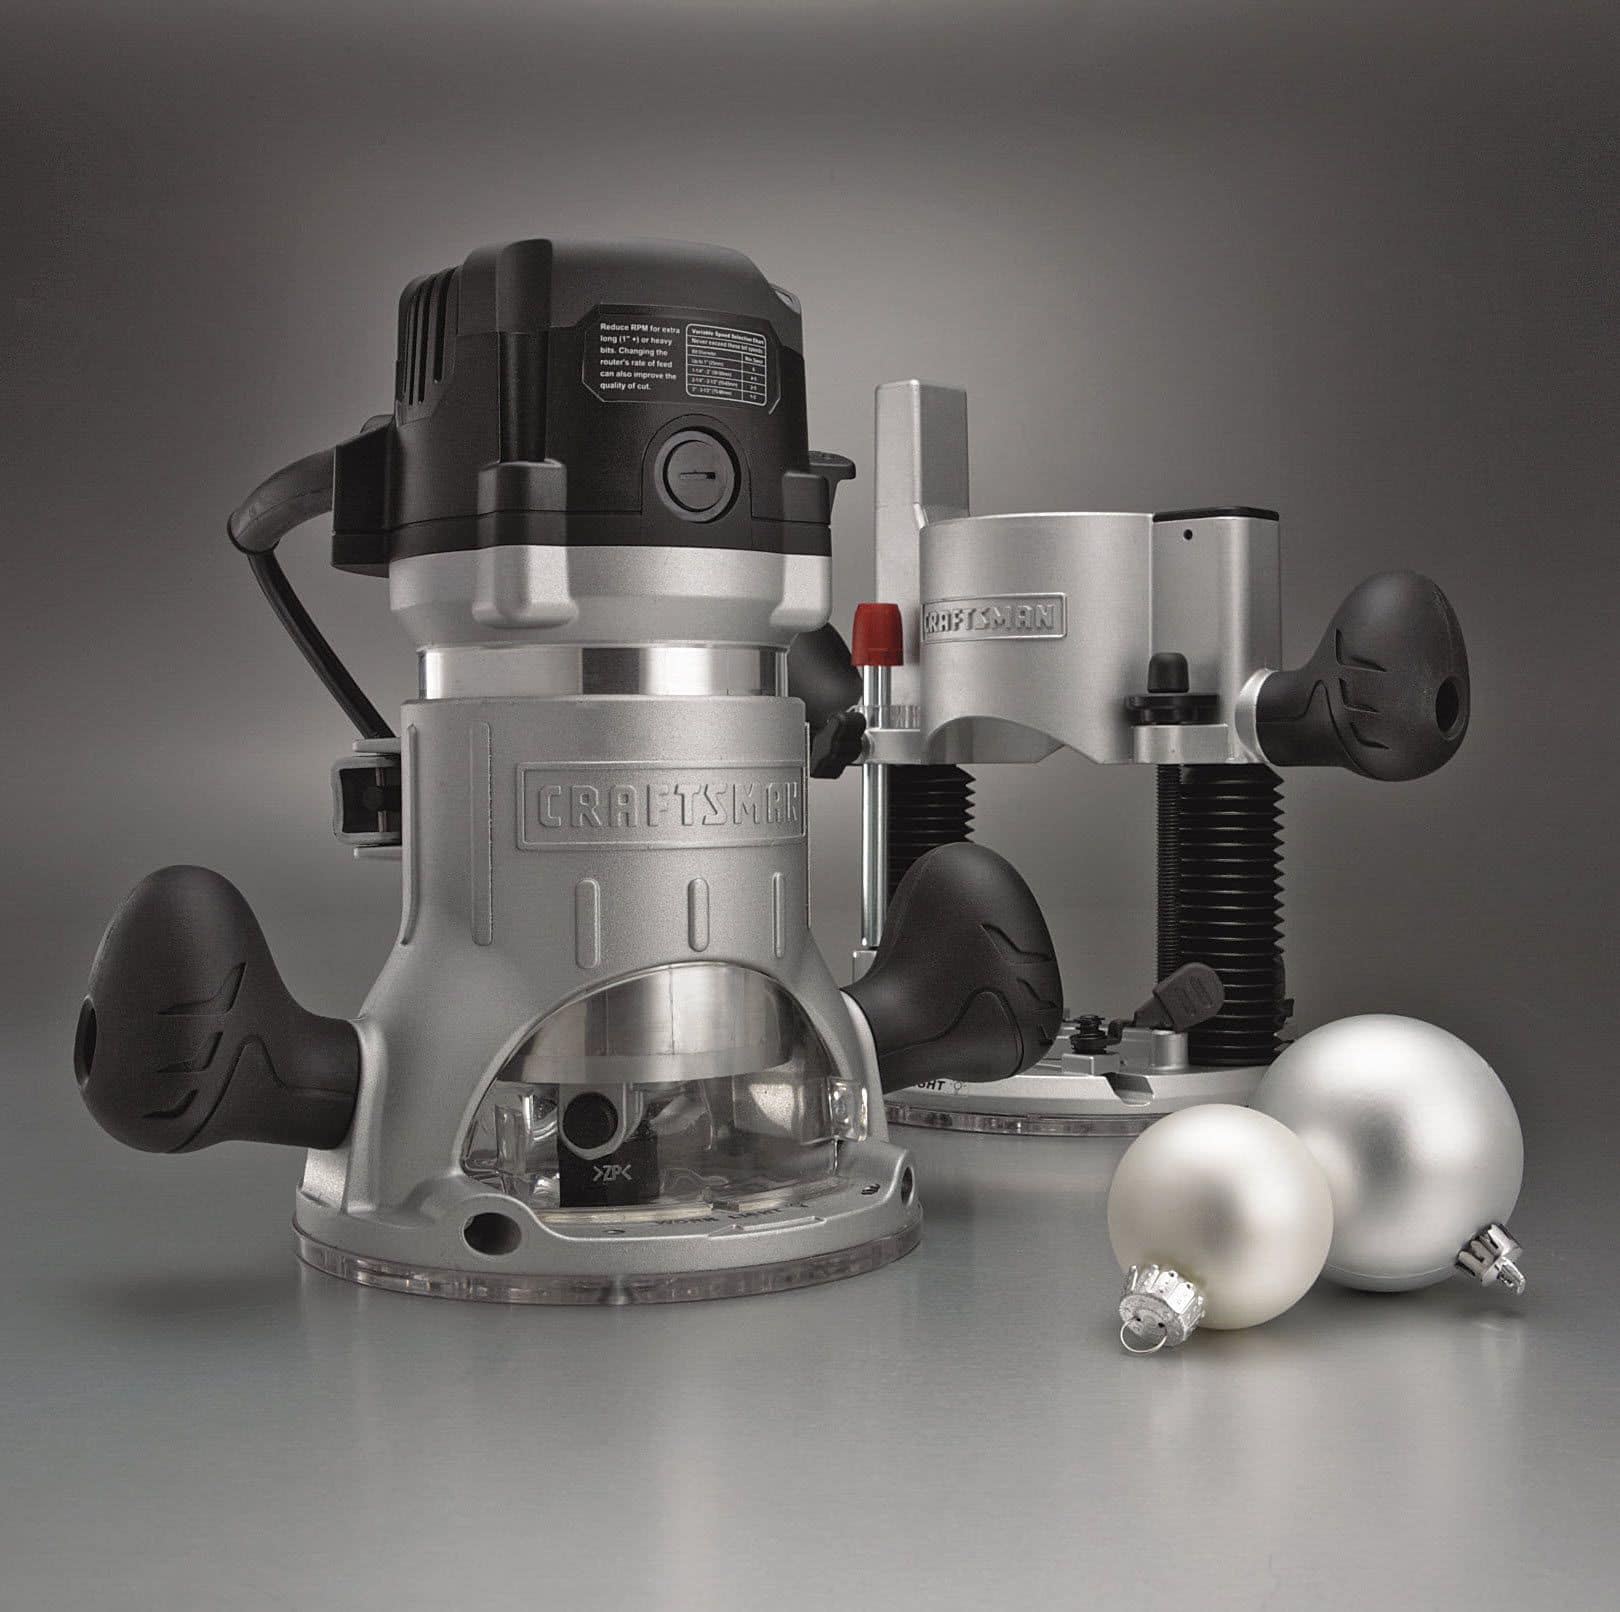 Craftsman Variable Speed Router